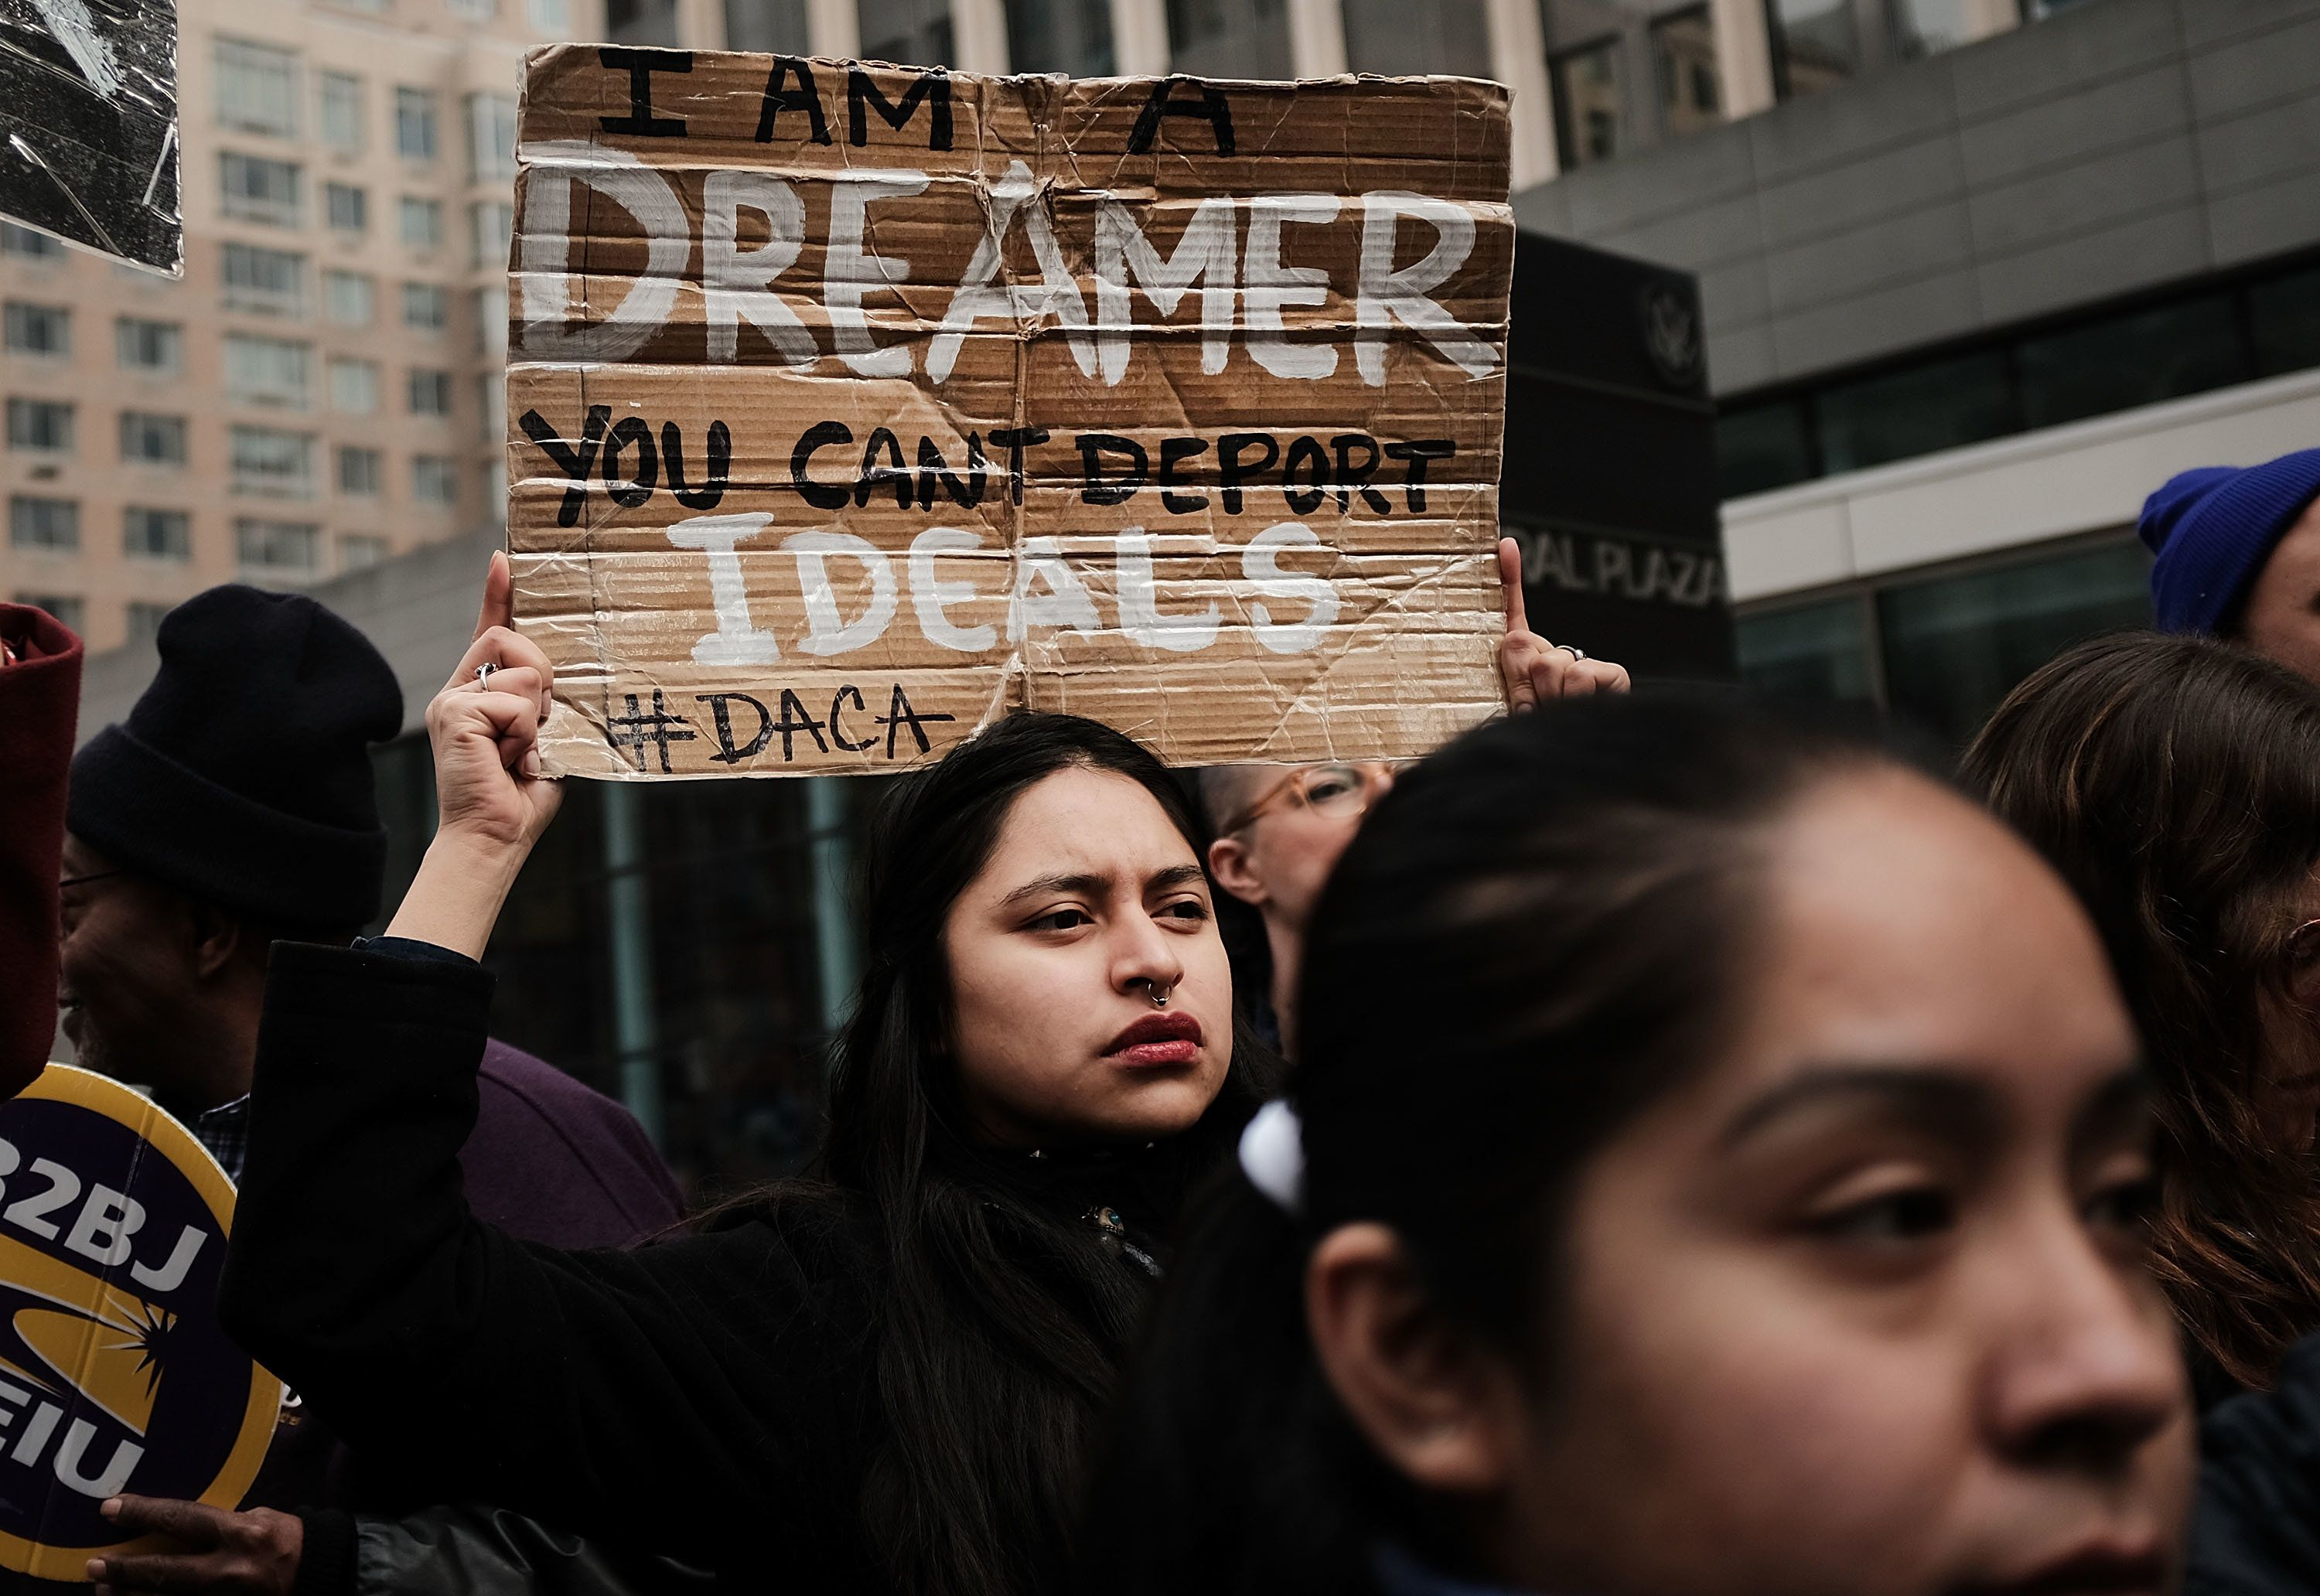 Judge again says DACA must be restored